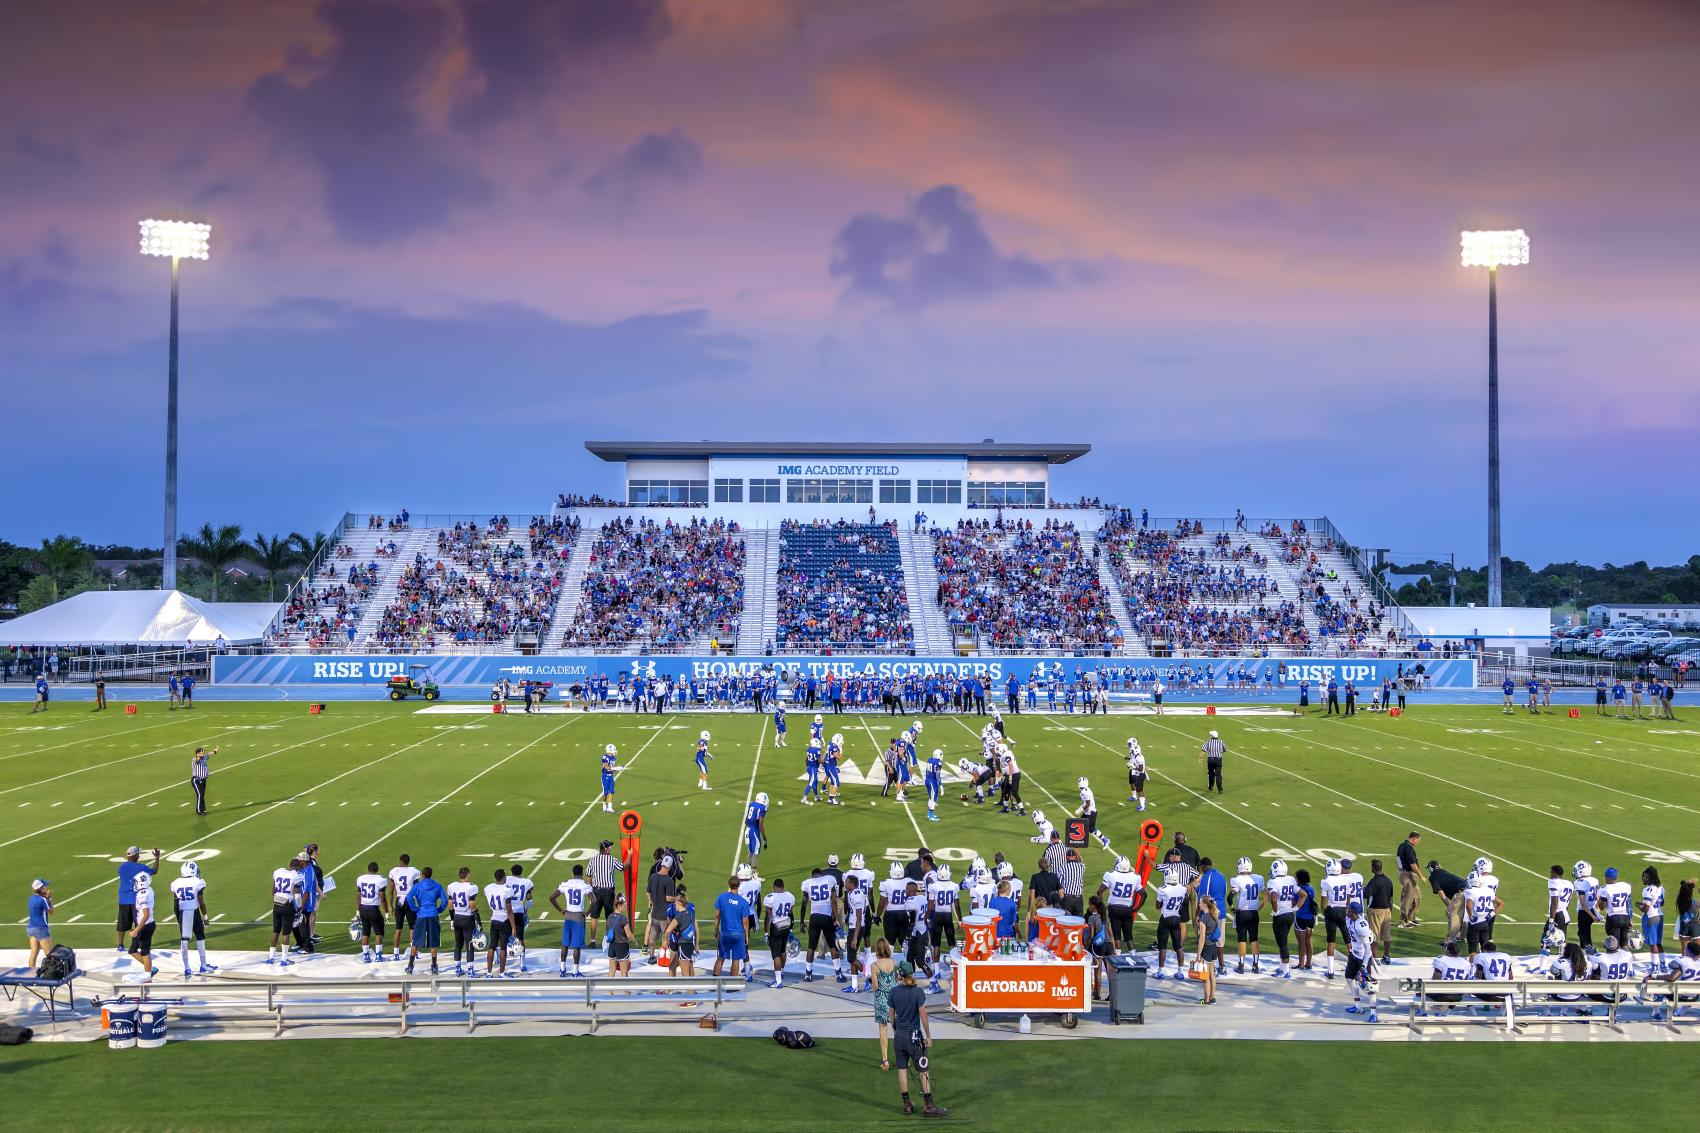 Closing Out Img Academy S 2017 Football Season Img Academy